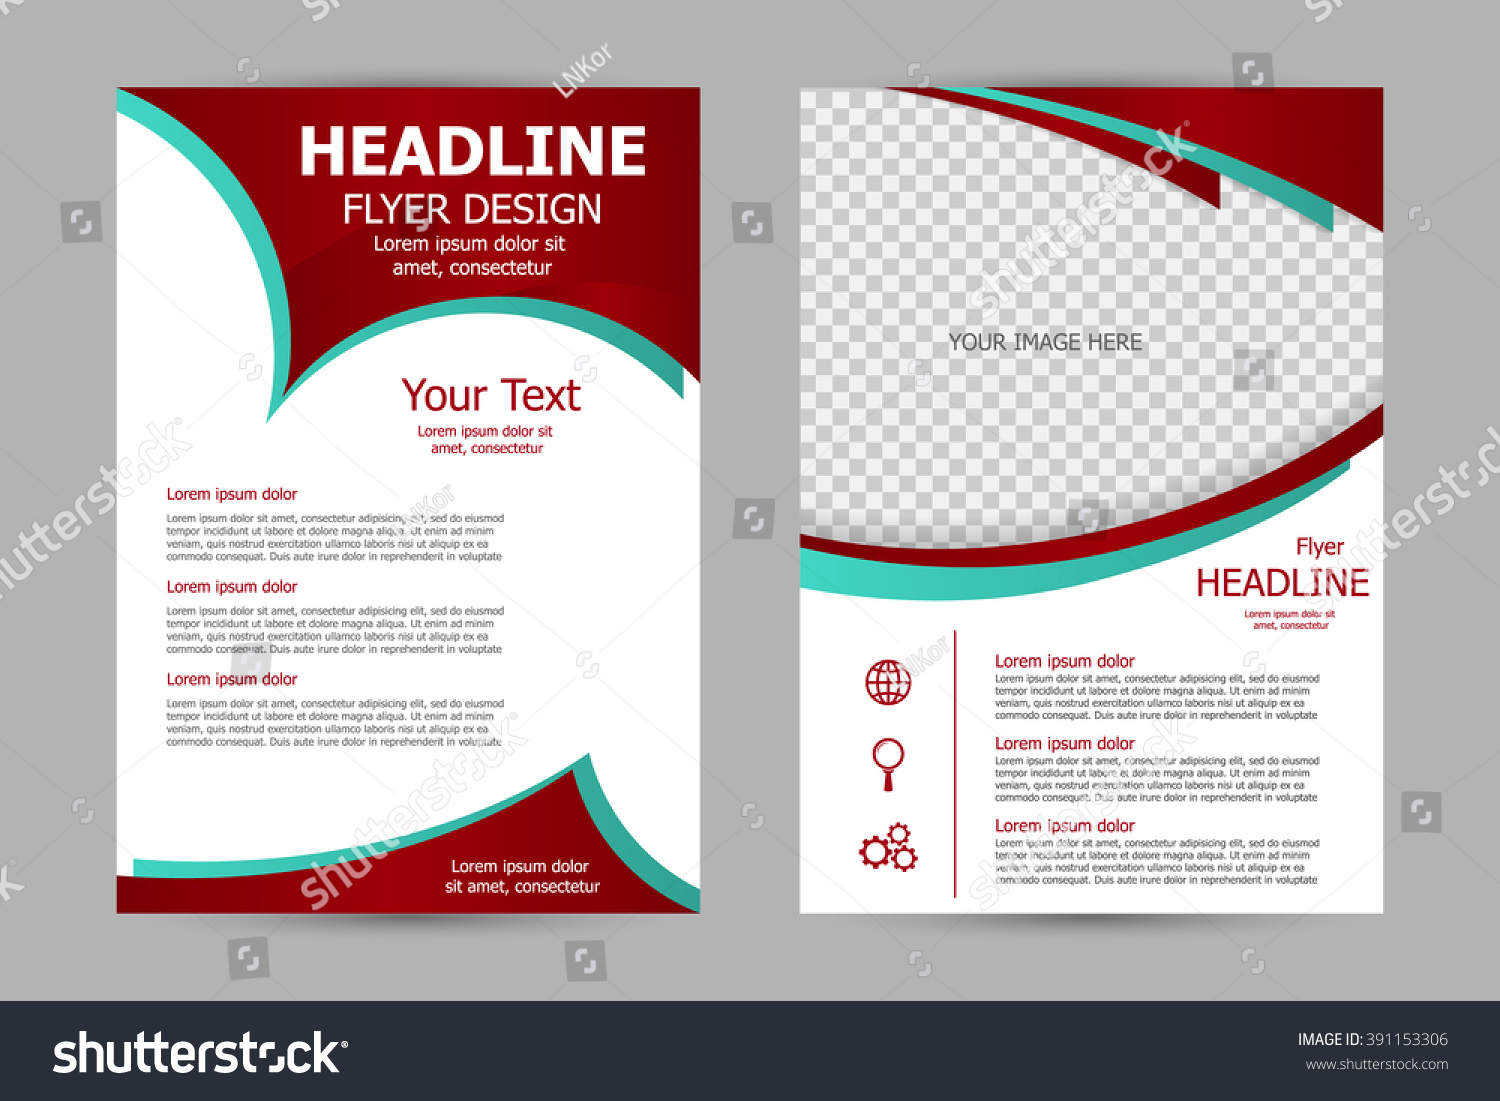 vector flyer template design business brochure stock vector vector flyer template design for business brochure leaflet or magazine cover